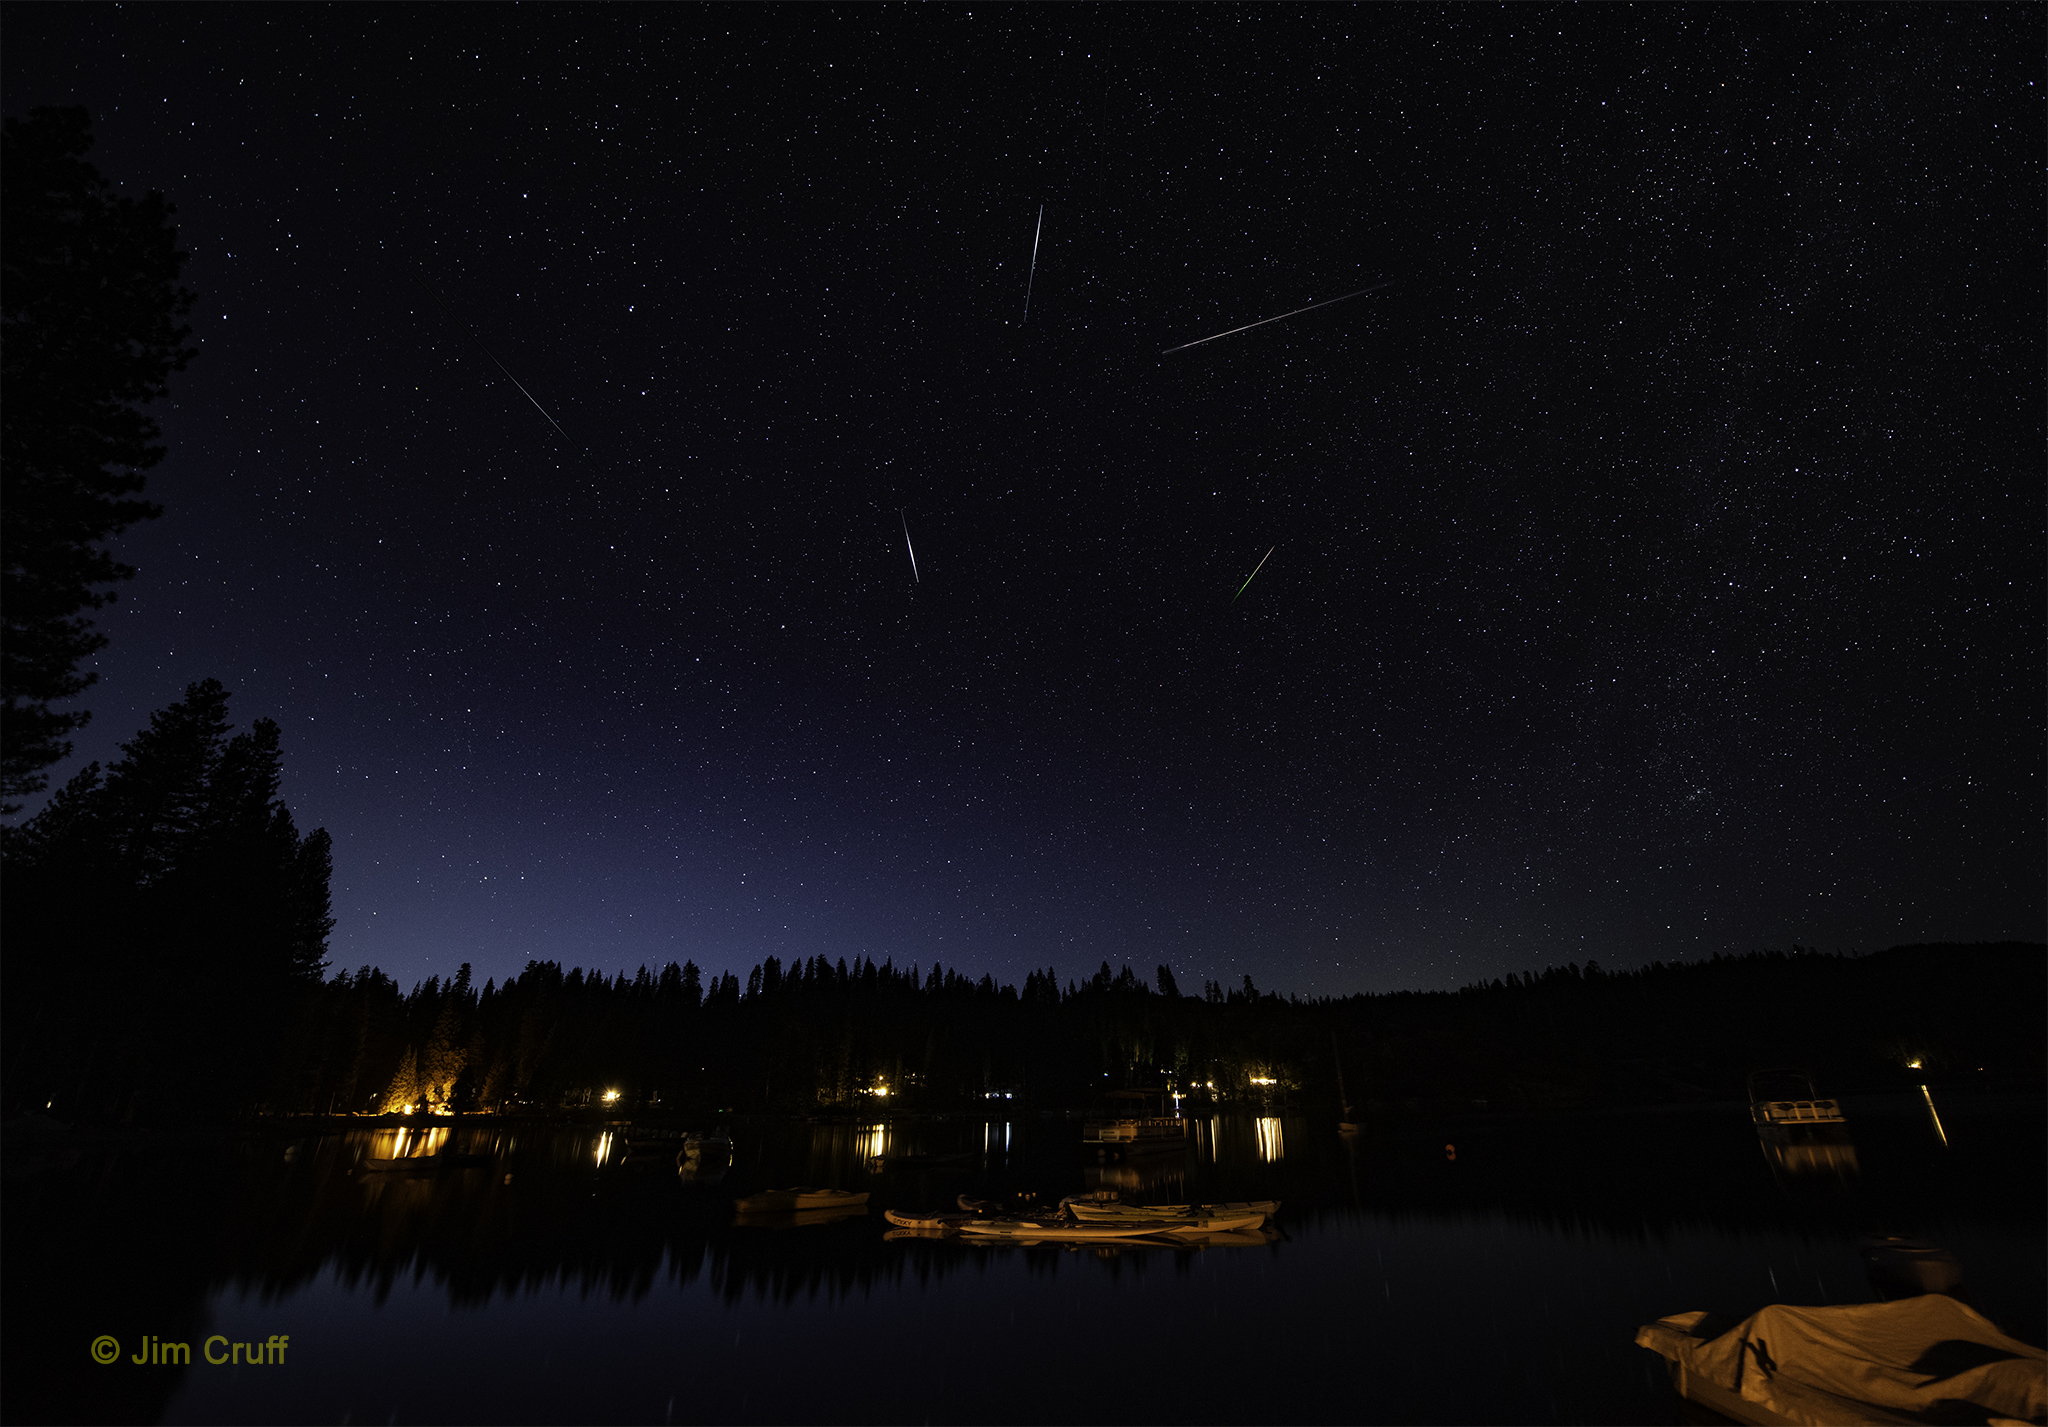 Perseid Meteor Shower Reaches Peak Starting Tonight